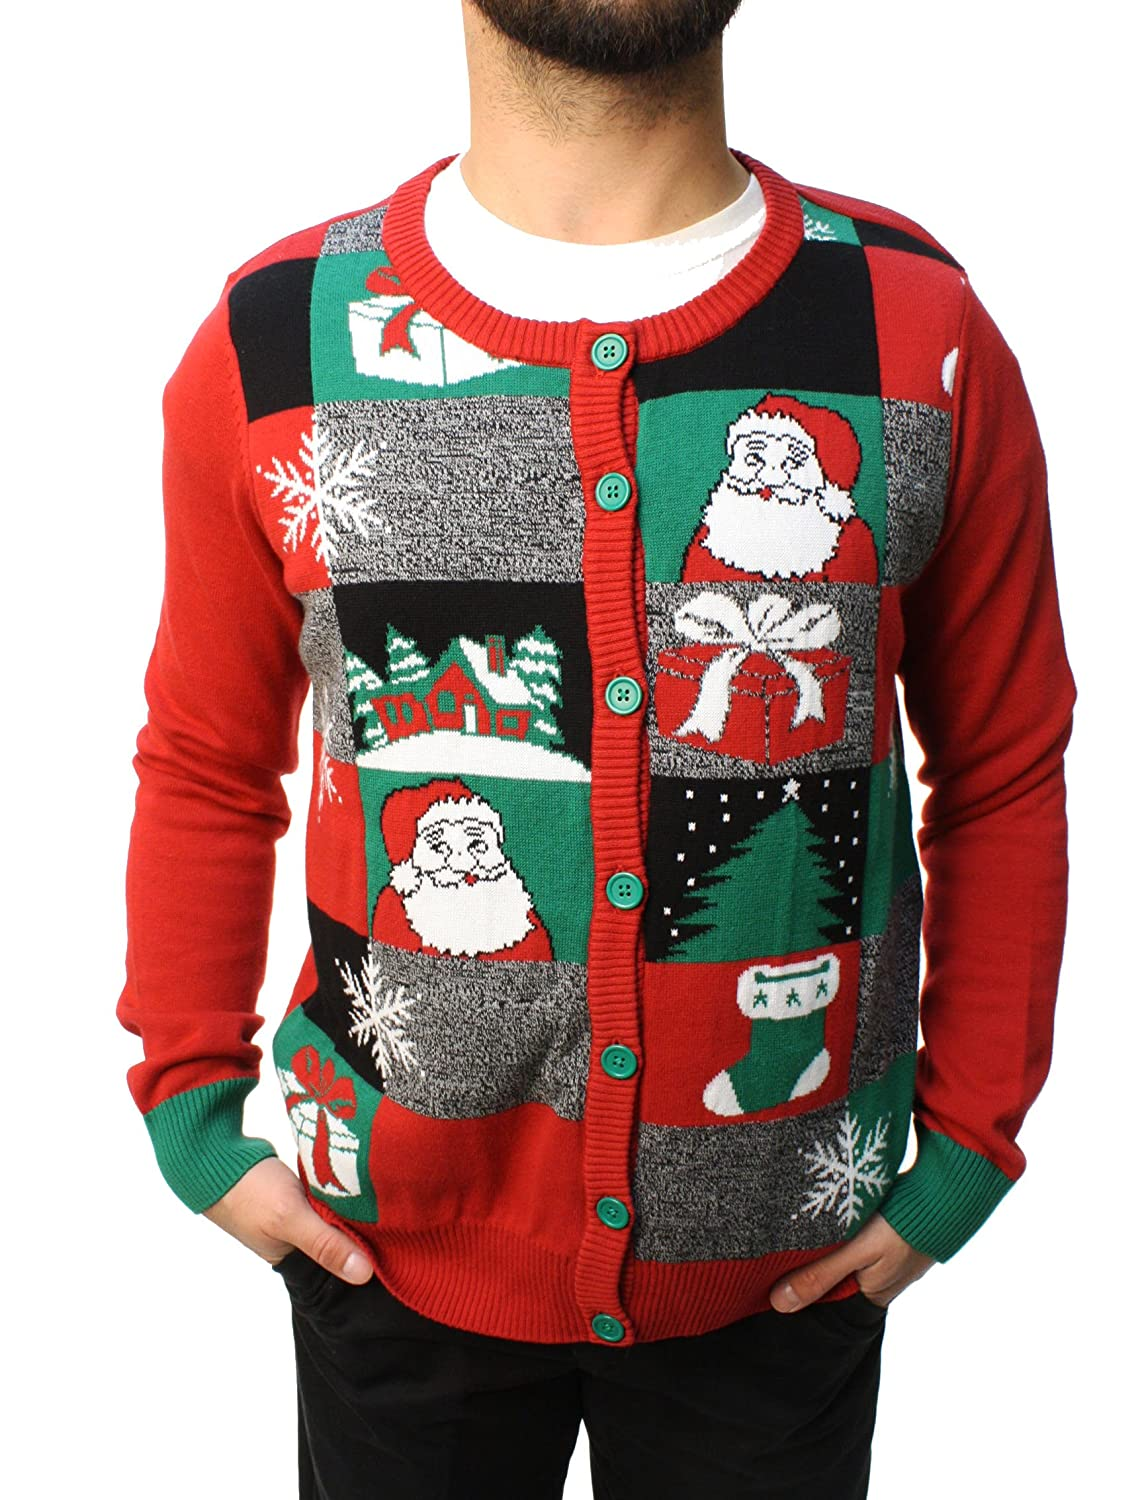 Ugly Christmas Sweater Teen Boy's Holiday Cardigan Pullover Sweatshirt